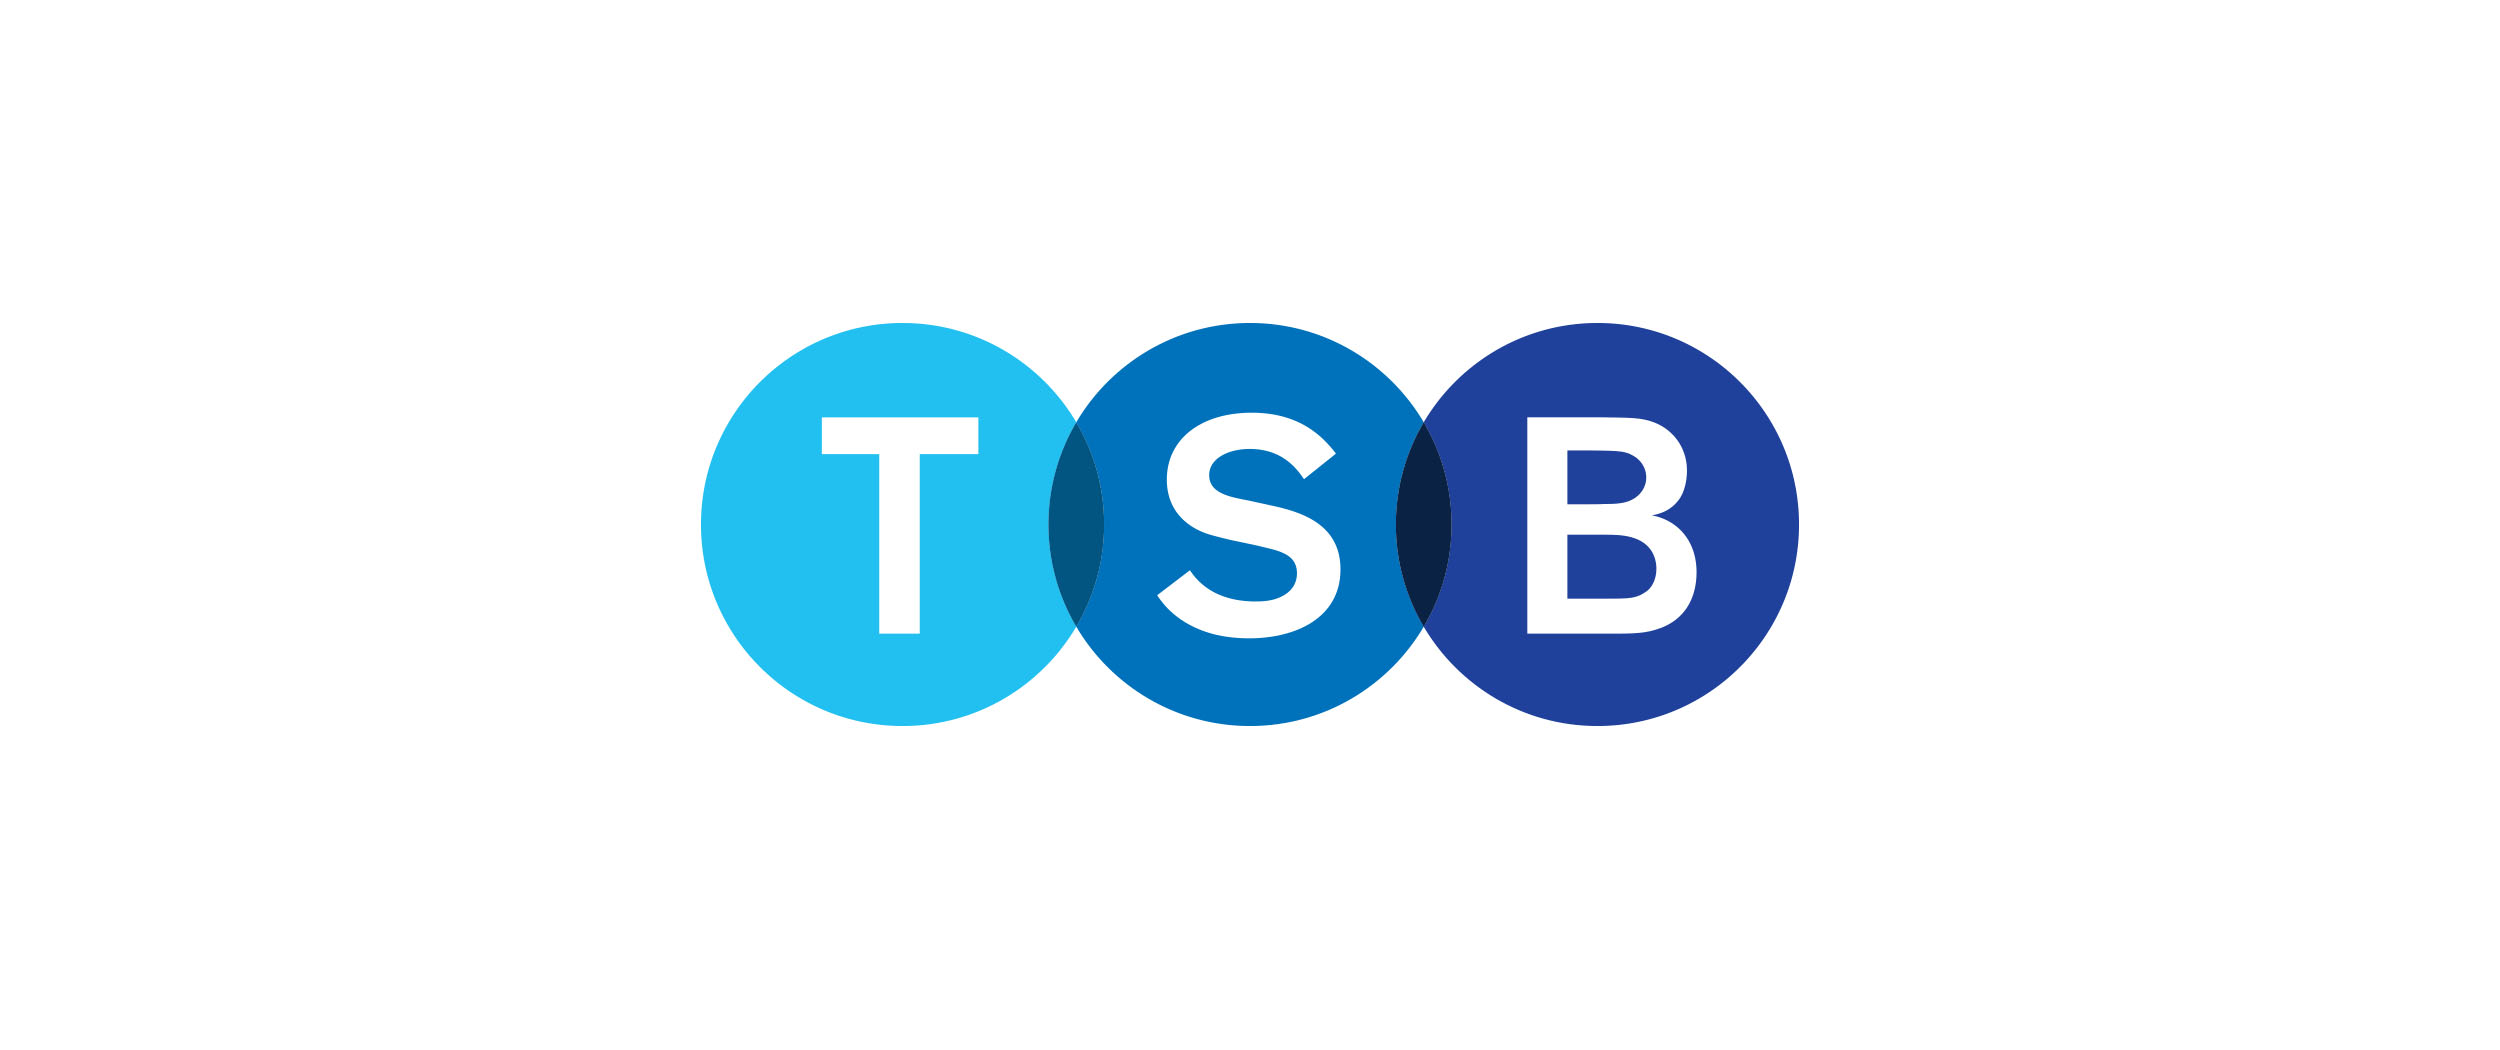 TSB_Core_Brand_Mark_v2 copy.jpg